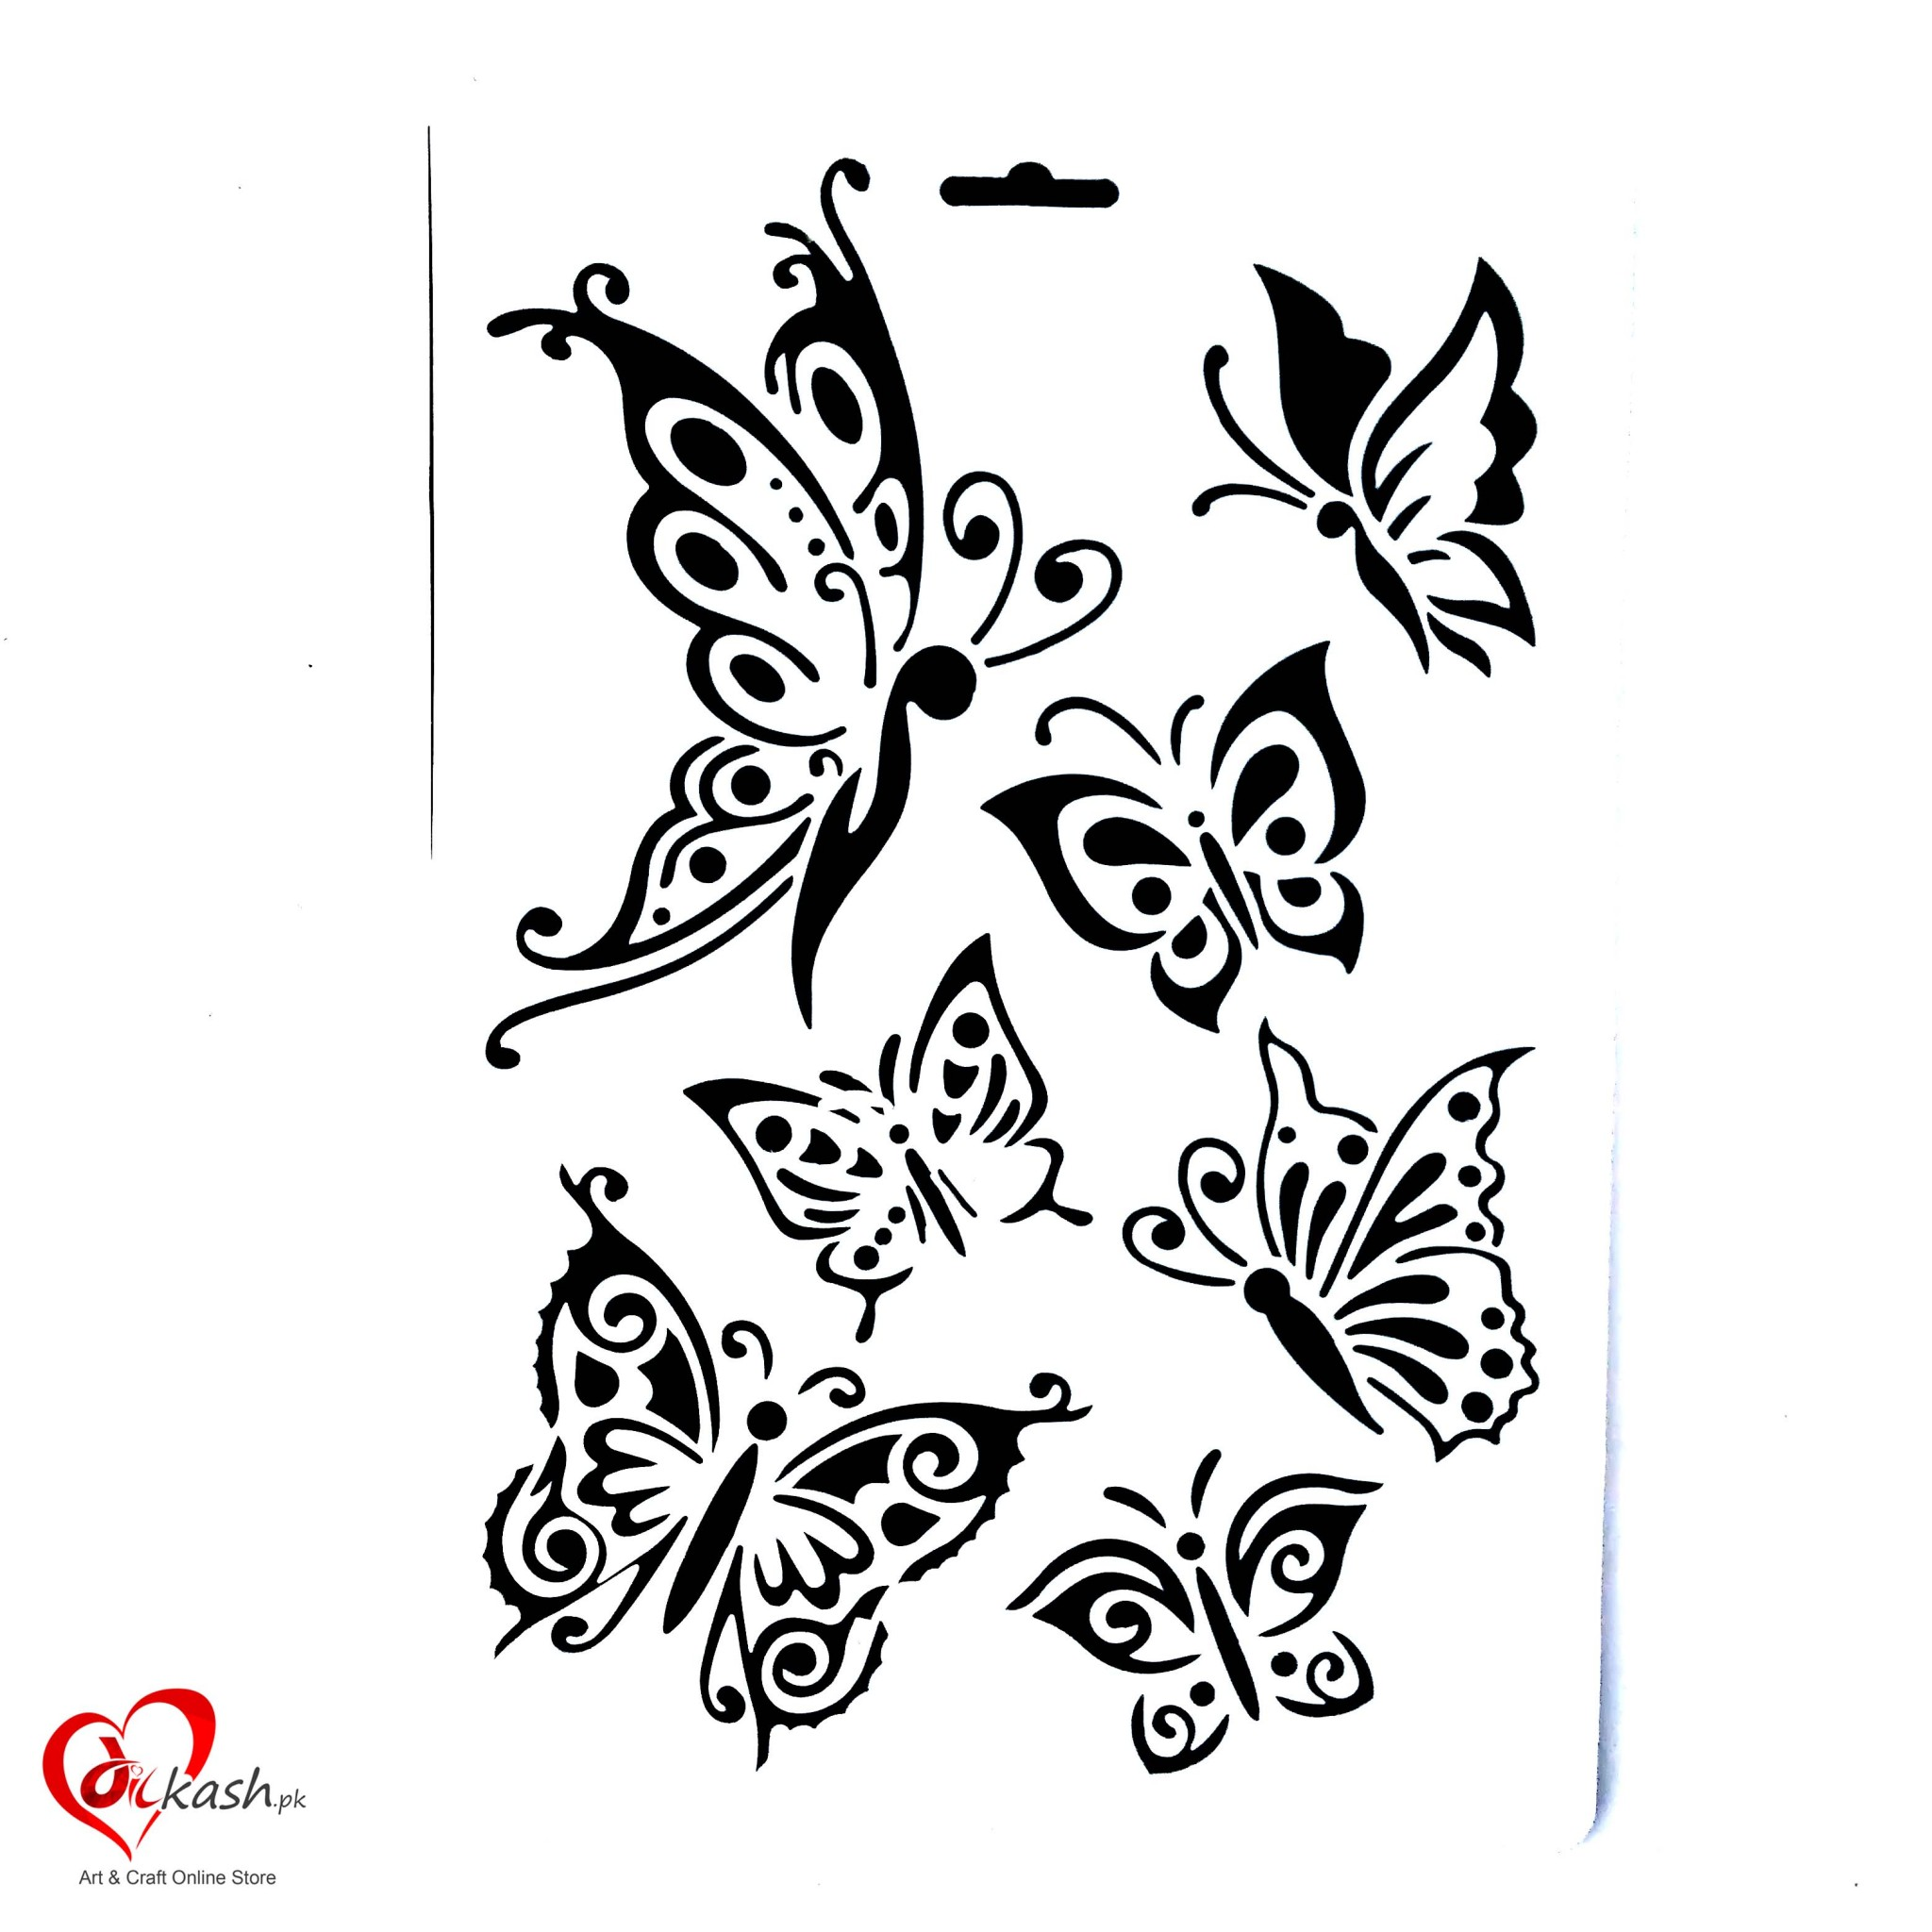 8x12 Inches Wall Stencils For Painting Designs